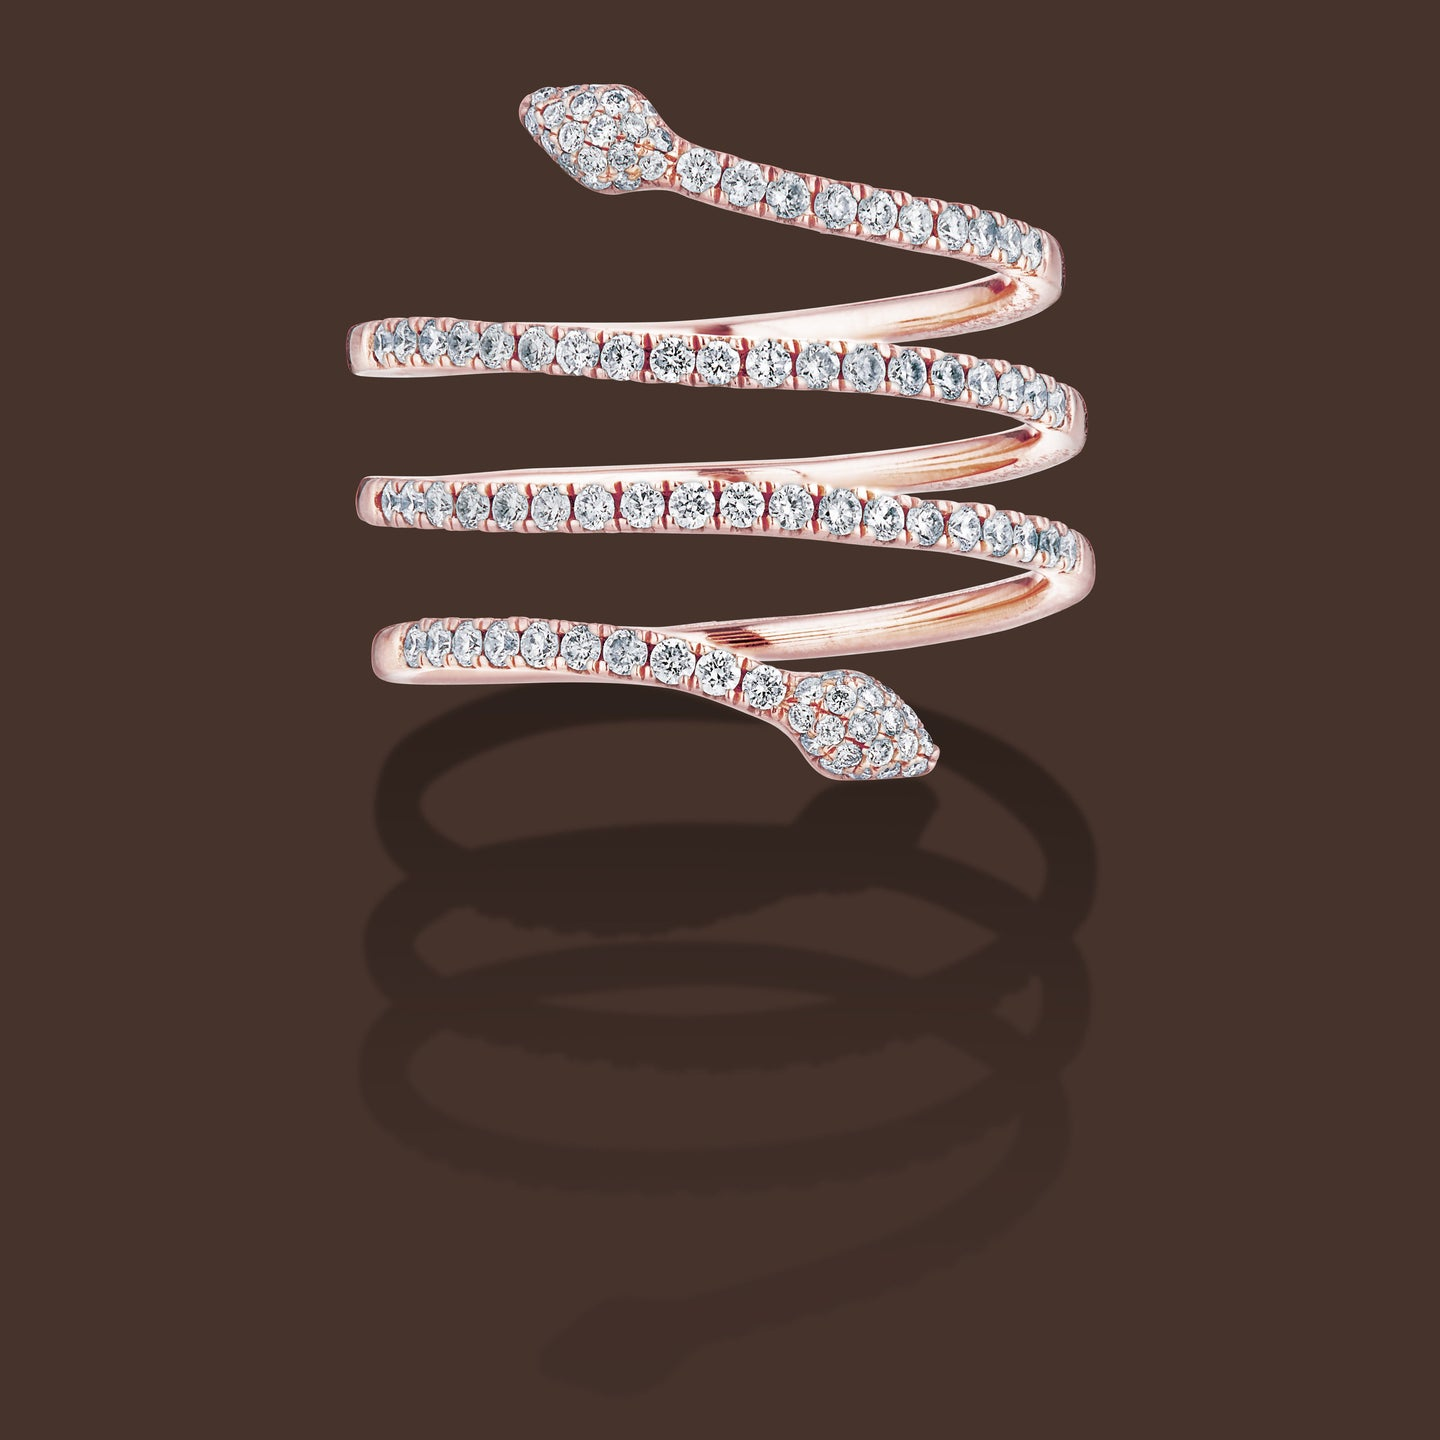 Serpentina Linea Ring 18K Rose Gold & Diamonds